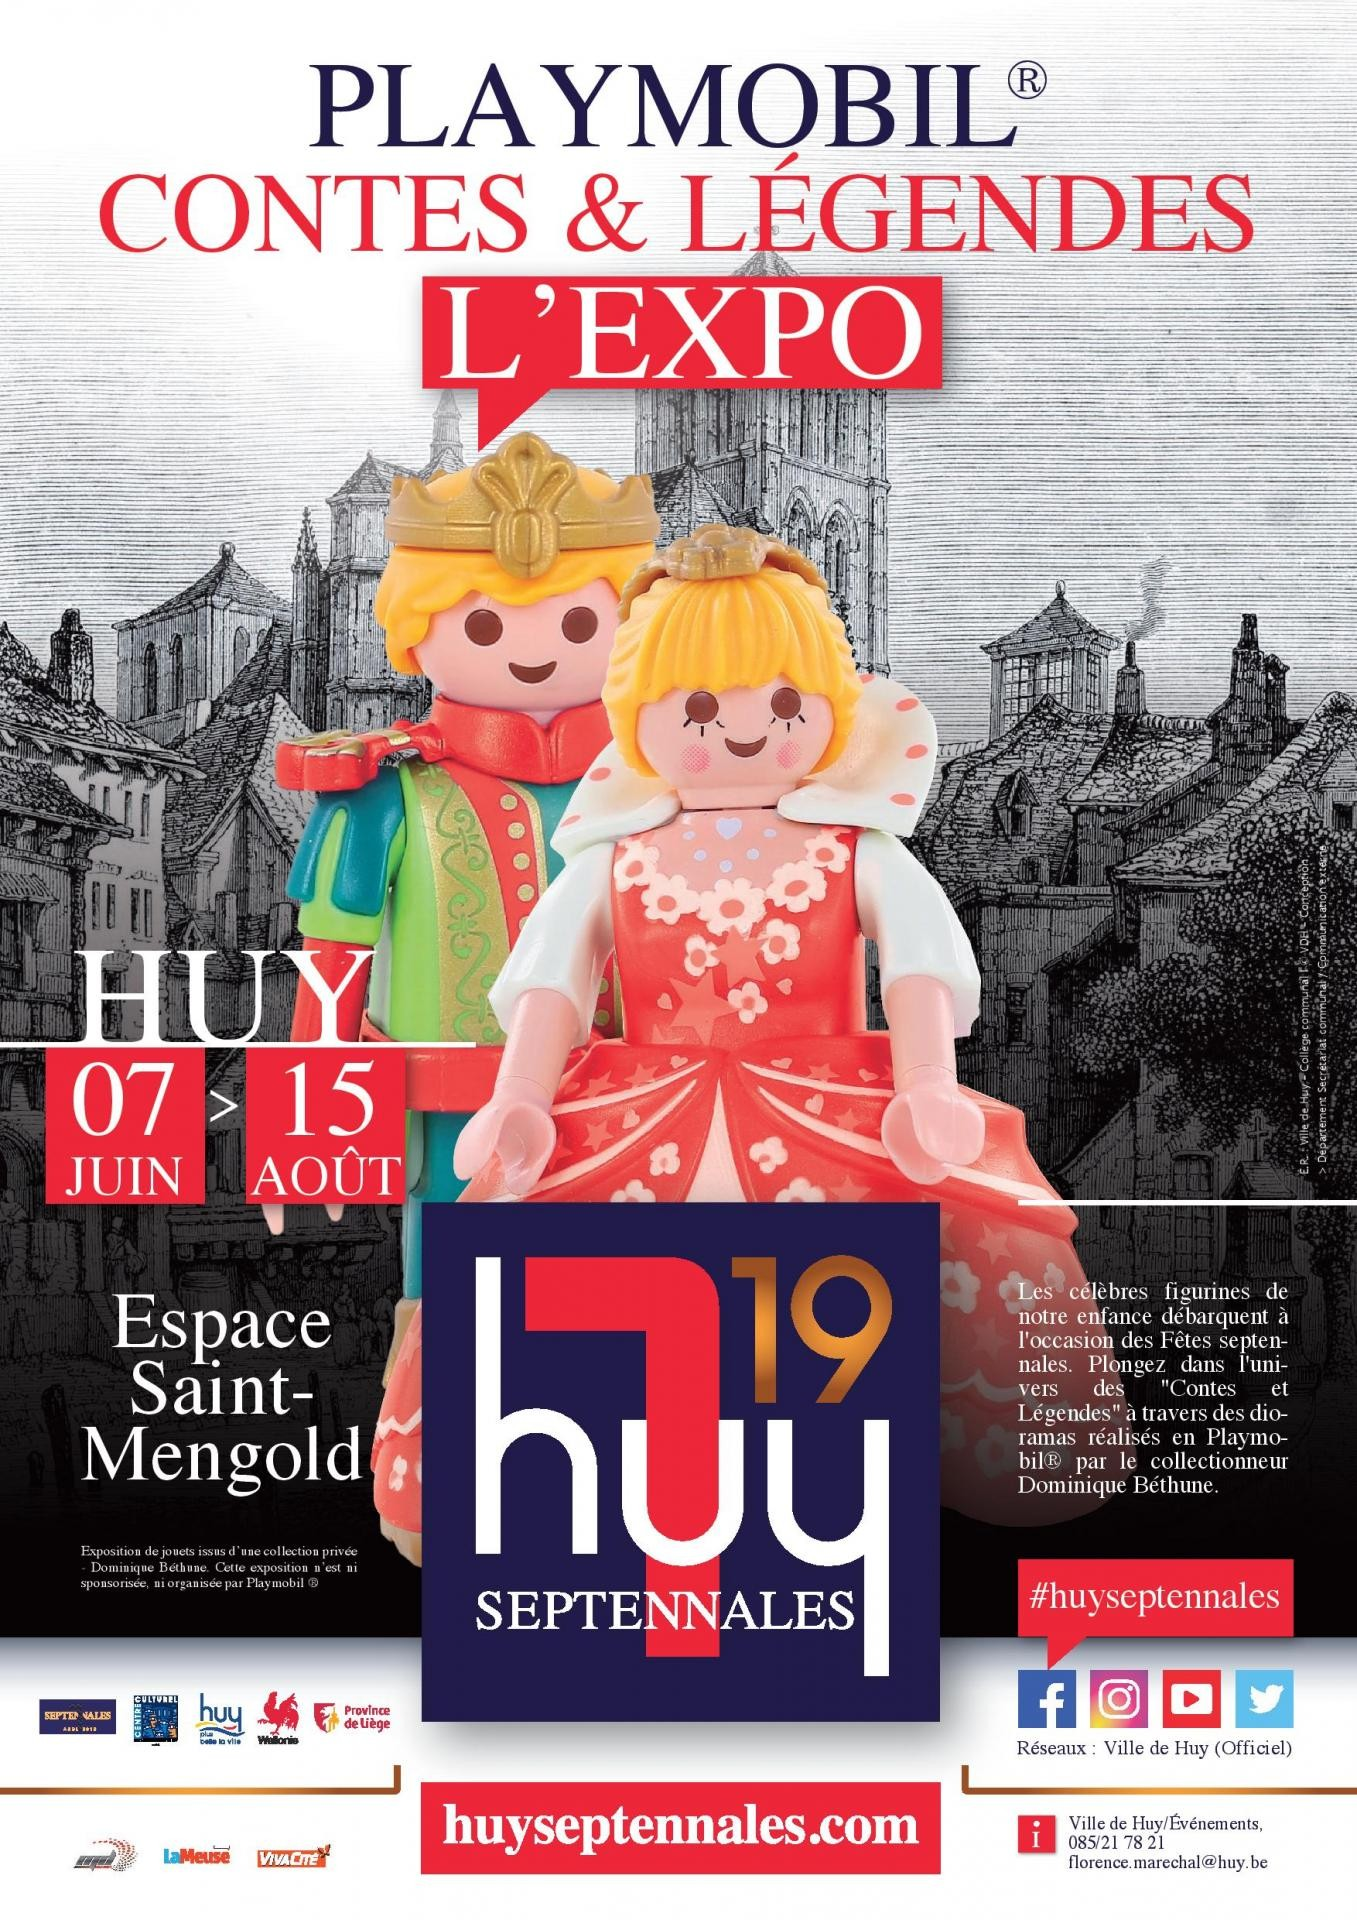 Septennales 2019 event expo playmobil septennales huy